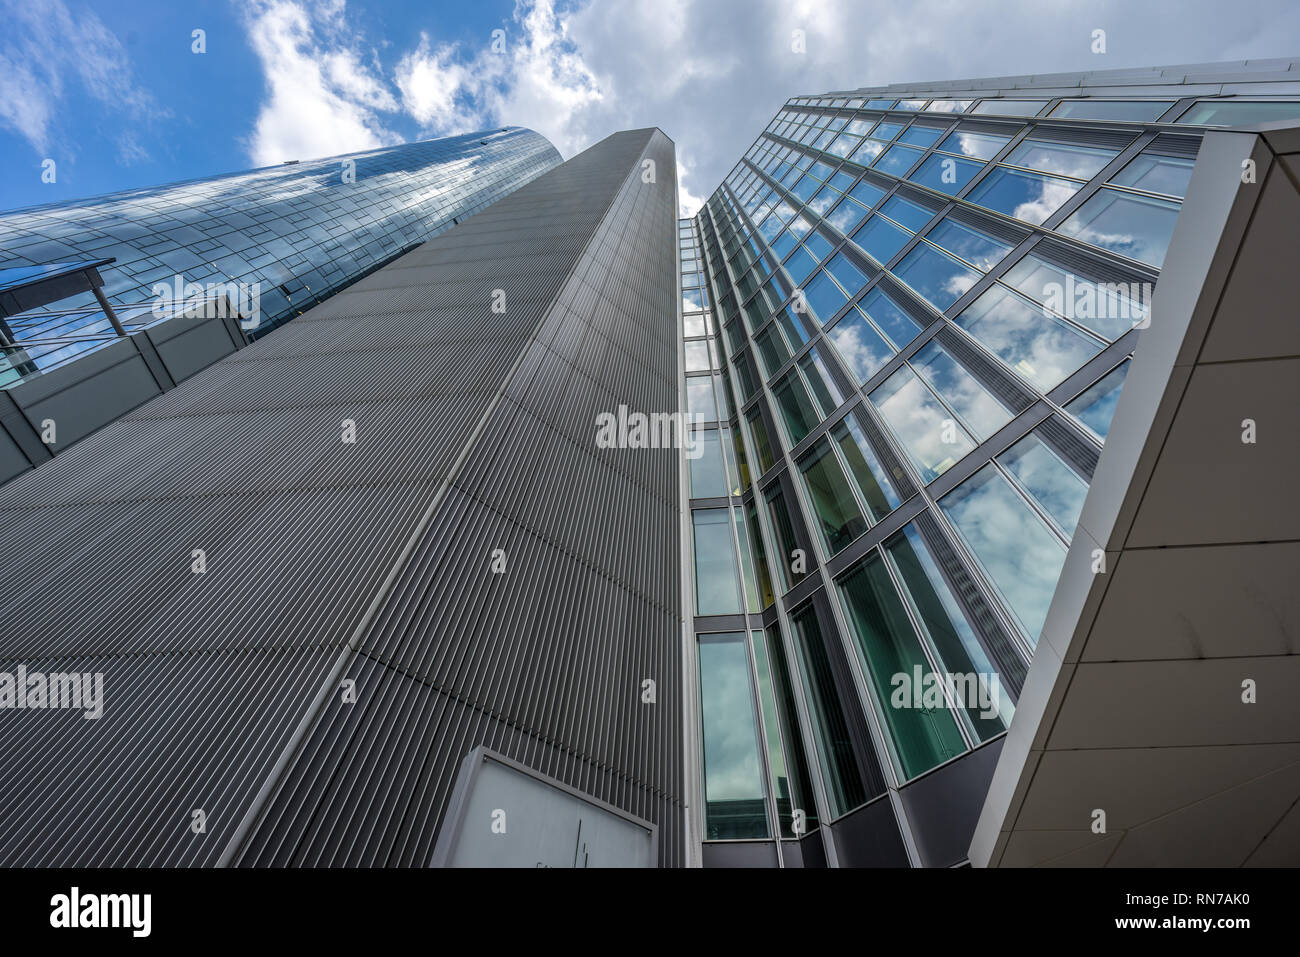 Frankfurt - July 26, 2016. Street level view of Main Tower and Garden Tower Located at neue mainzer street in the banking district (Bankenviertel) - Stock Image